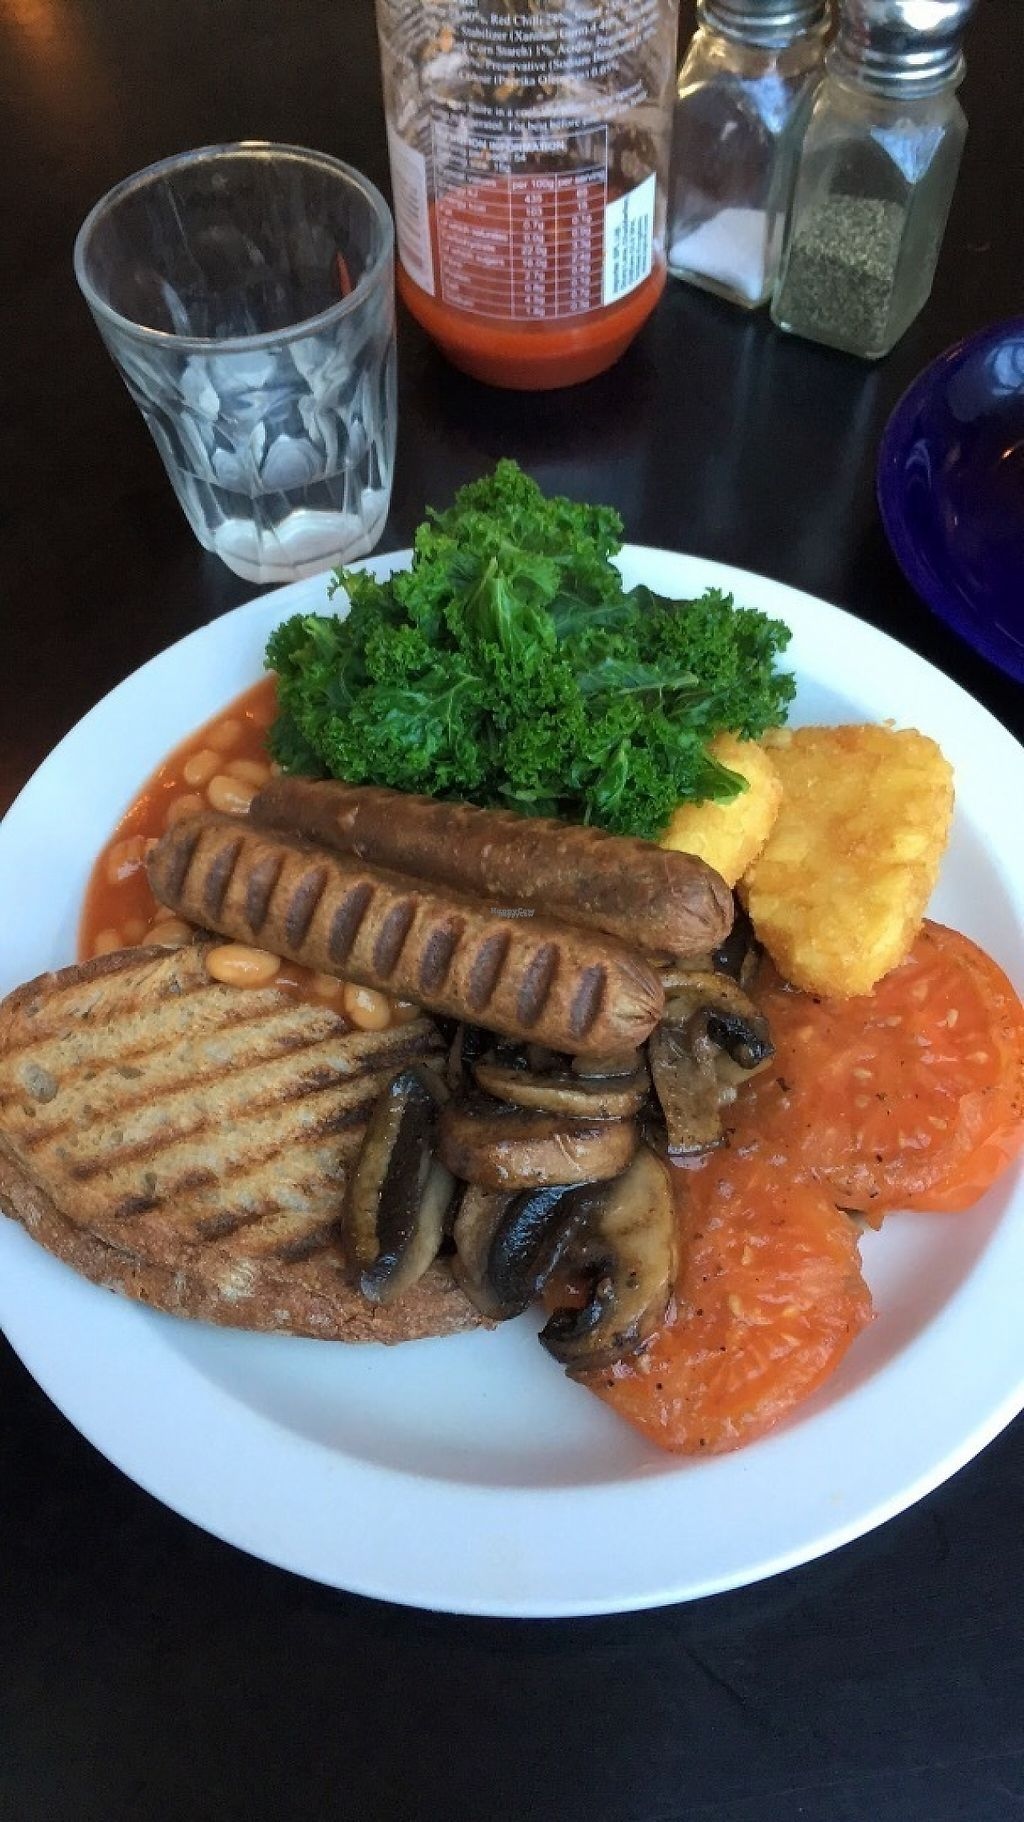 """Photo of The Gallery Cafe  by <a href=""""/members/profile/Saltyalien"""">Saltyalien</a> <br/>Full English breakfast <br/> December 1, 2016  - <a href='/contact/abuse/image/3676/196422'>Report</a>"""